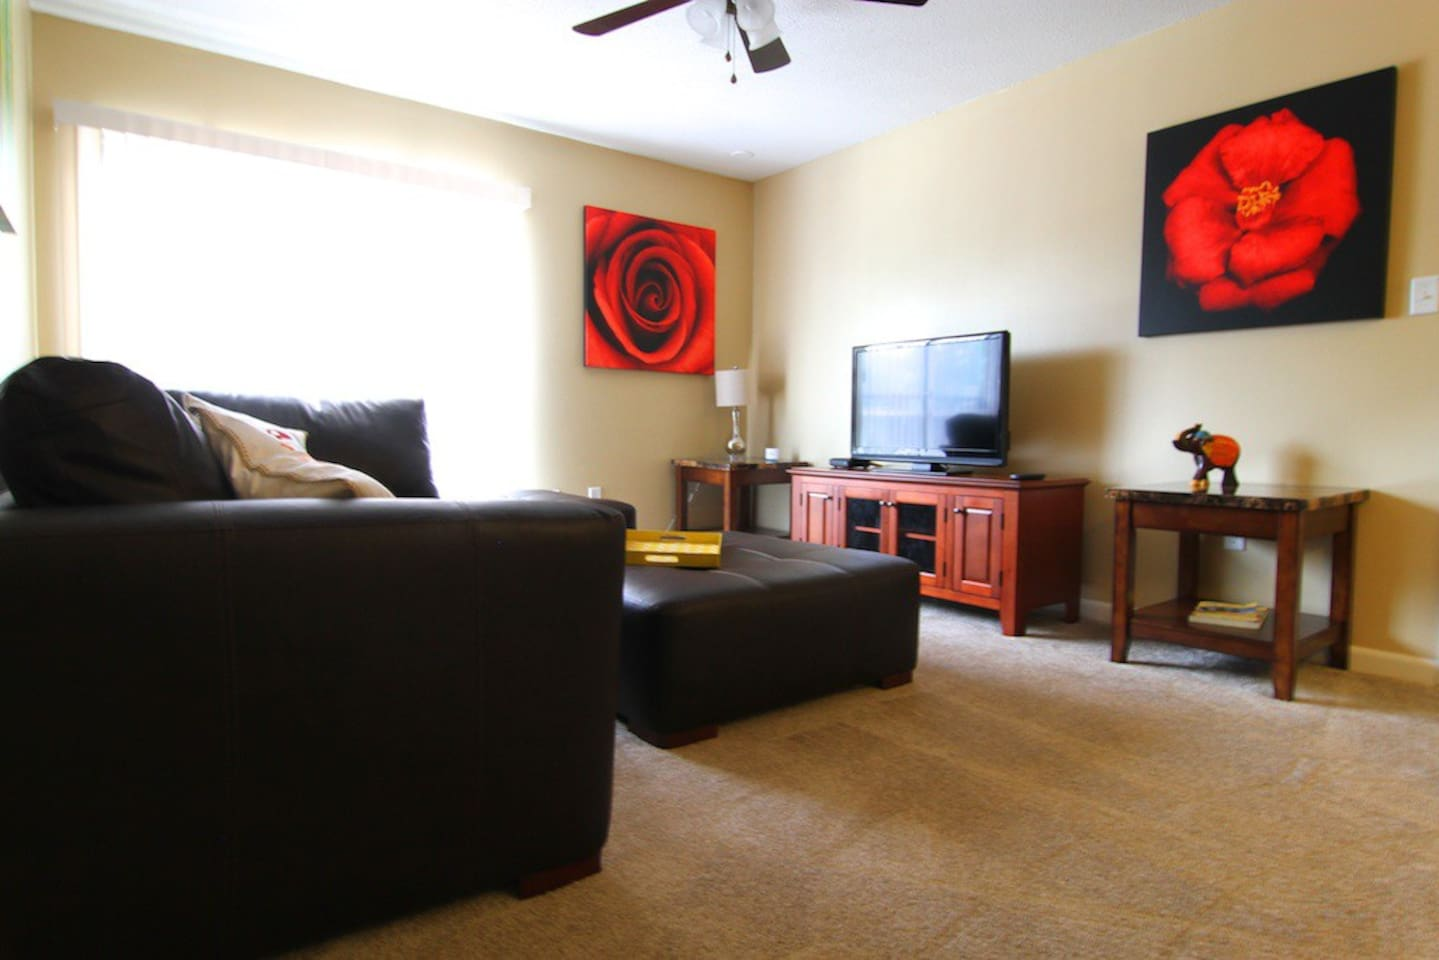 Nicely decorated with owner's photographs on canvas, comfortable furniture, flat-screen TV, wireless internet, cable, etc...